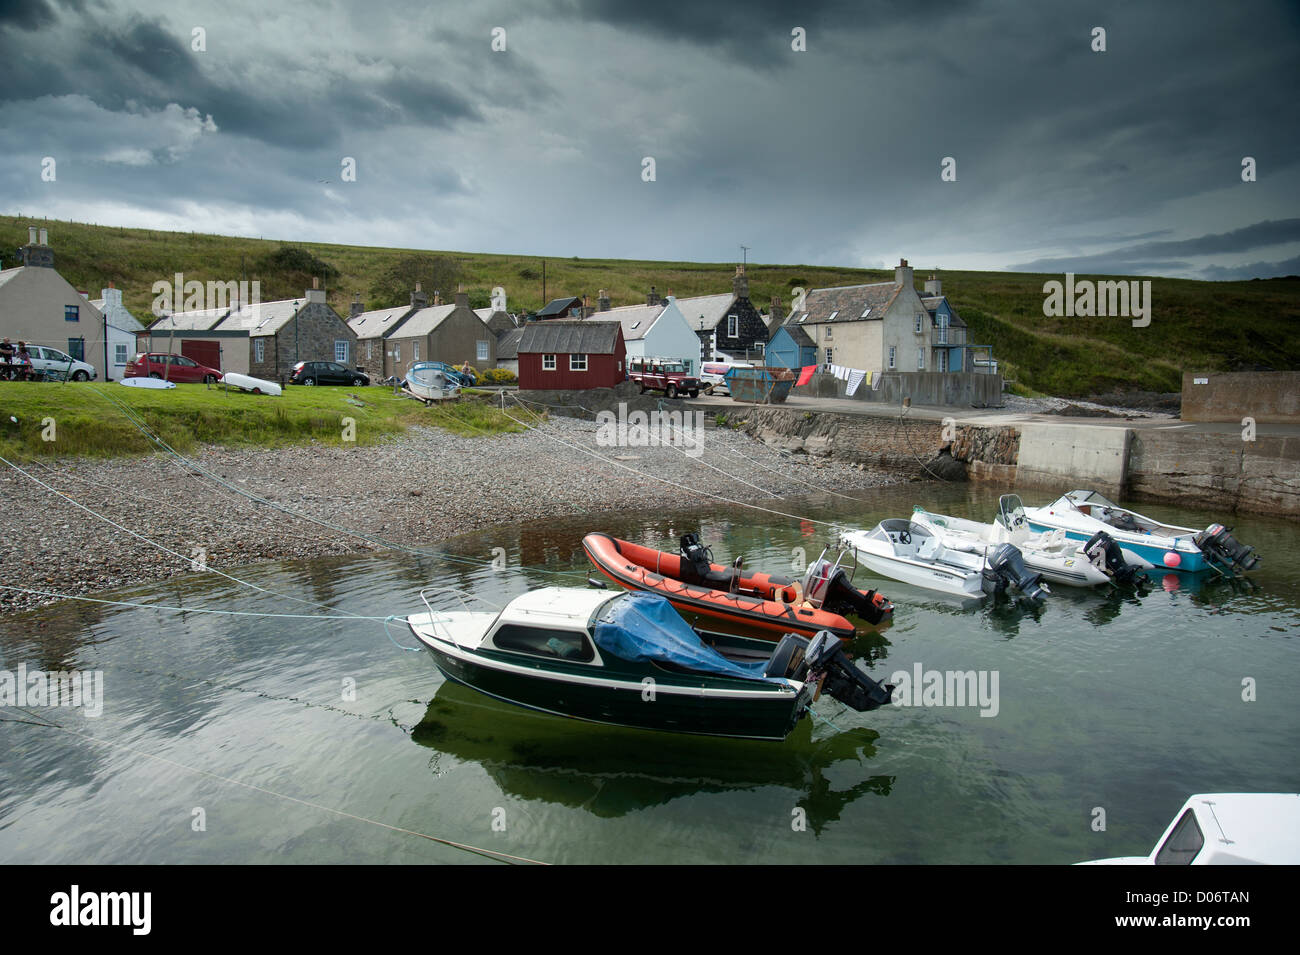 The small secluded village and harbour of Sandend, Aberdeenshire.   SCO 8455 - Stock Image